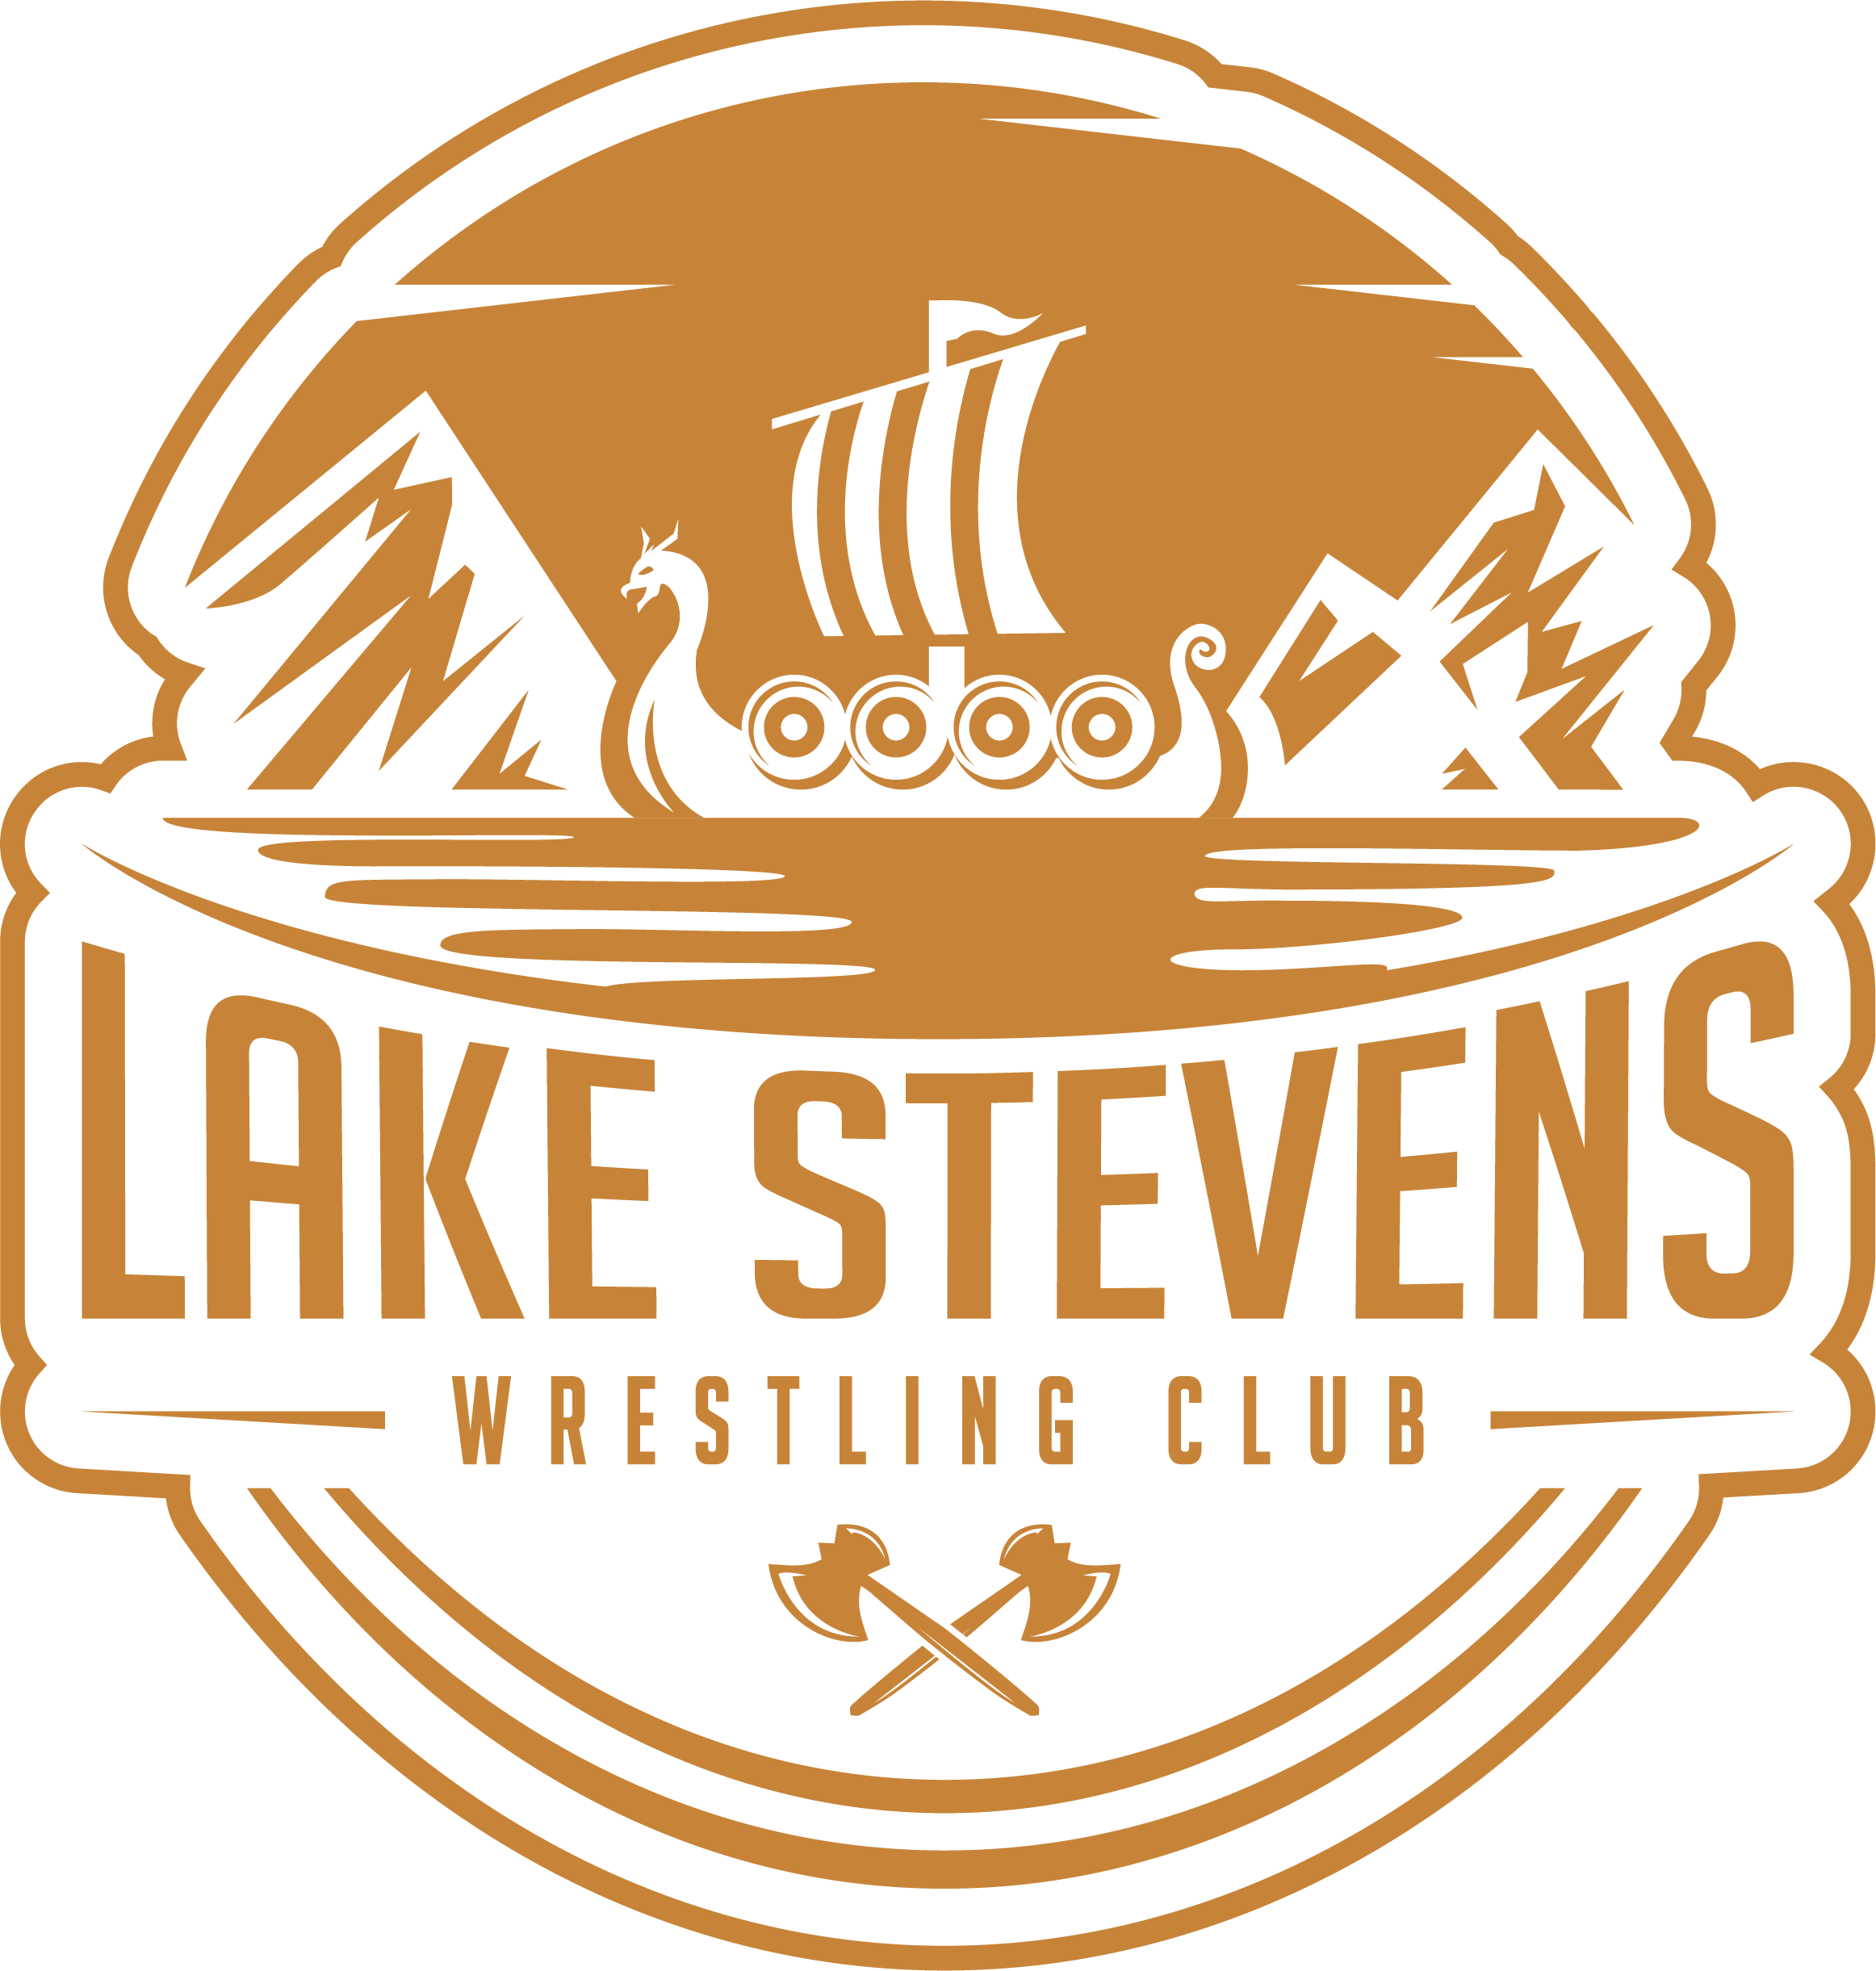 Lake Stevens Wrestling Club